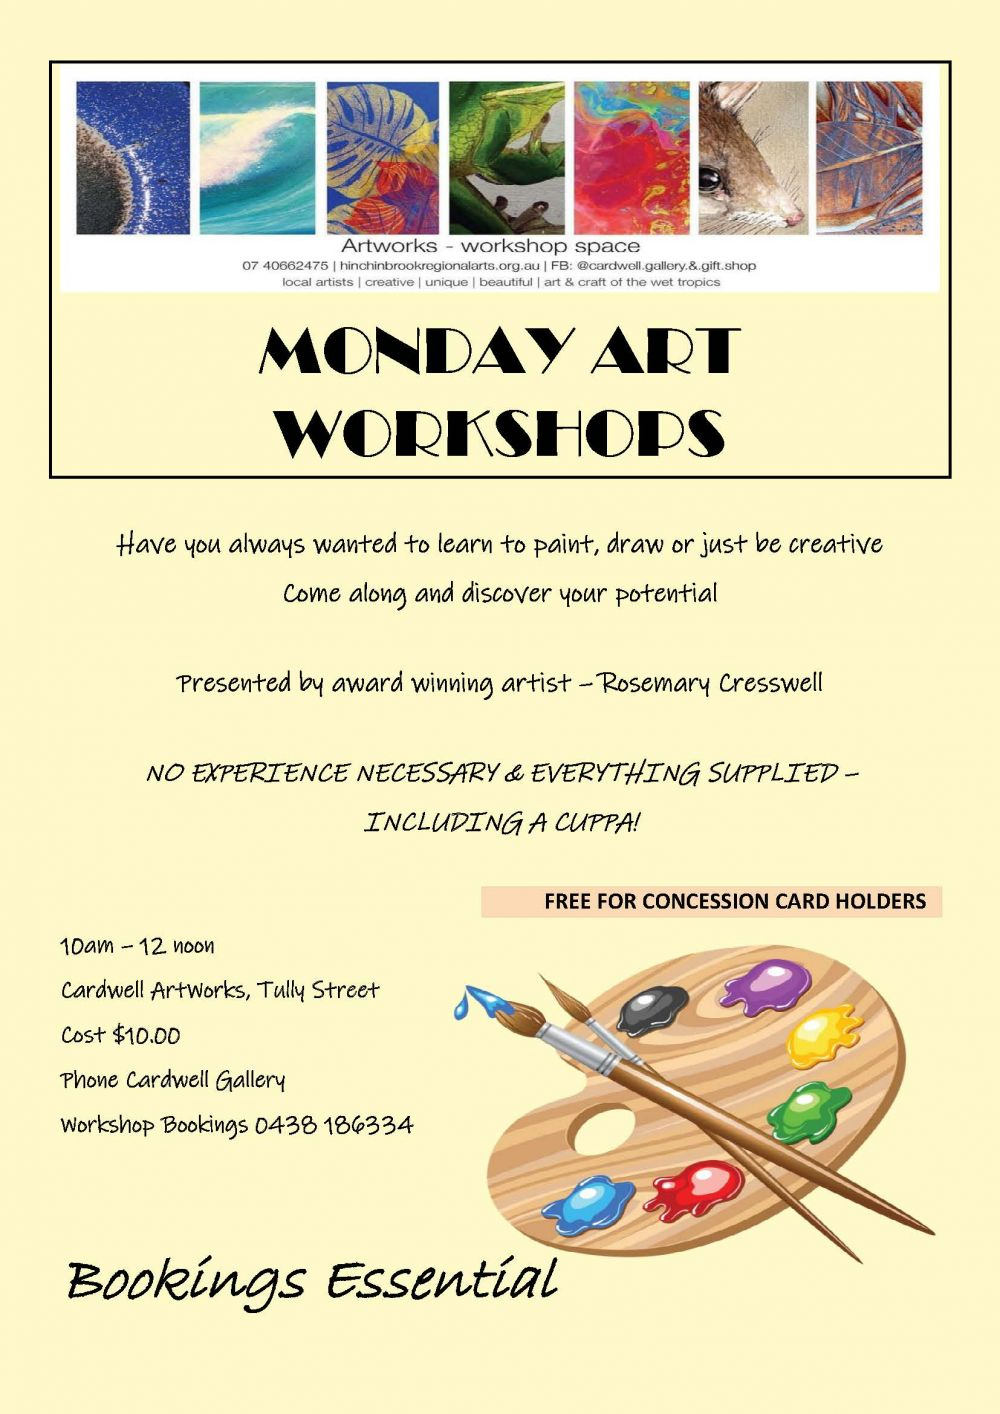 MONDAY ART WORKSHOPS Jan 2021.jpg